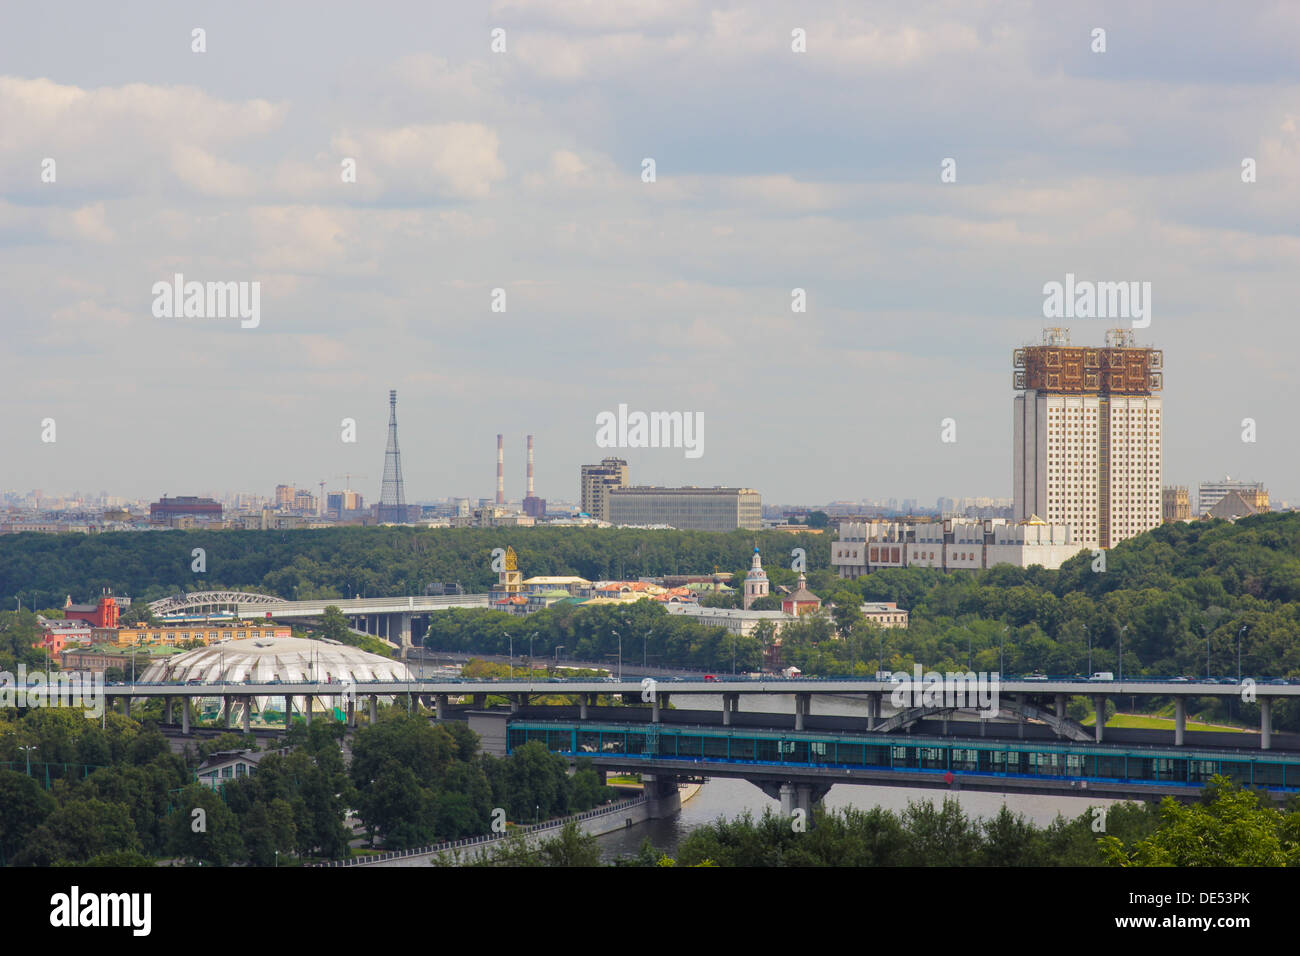 Moscow, Vorobyevy Gory: observation deck 22